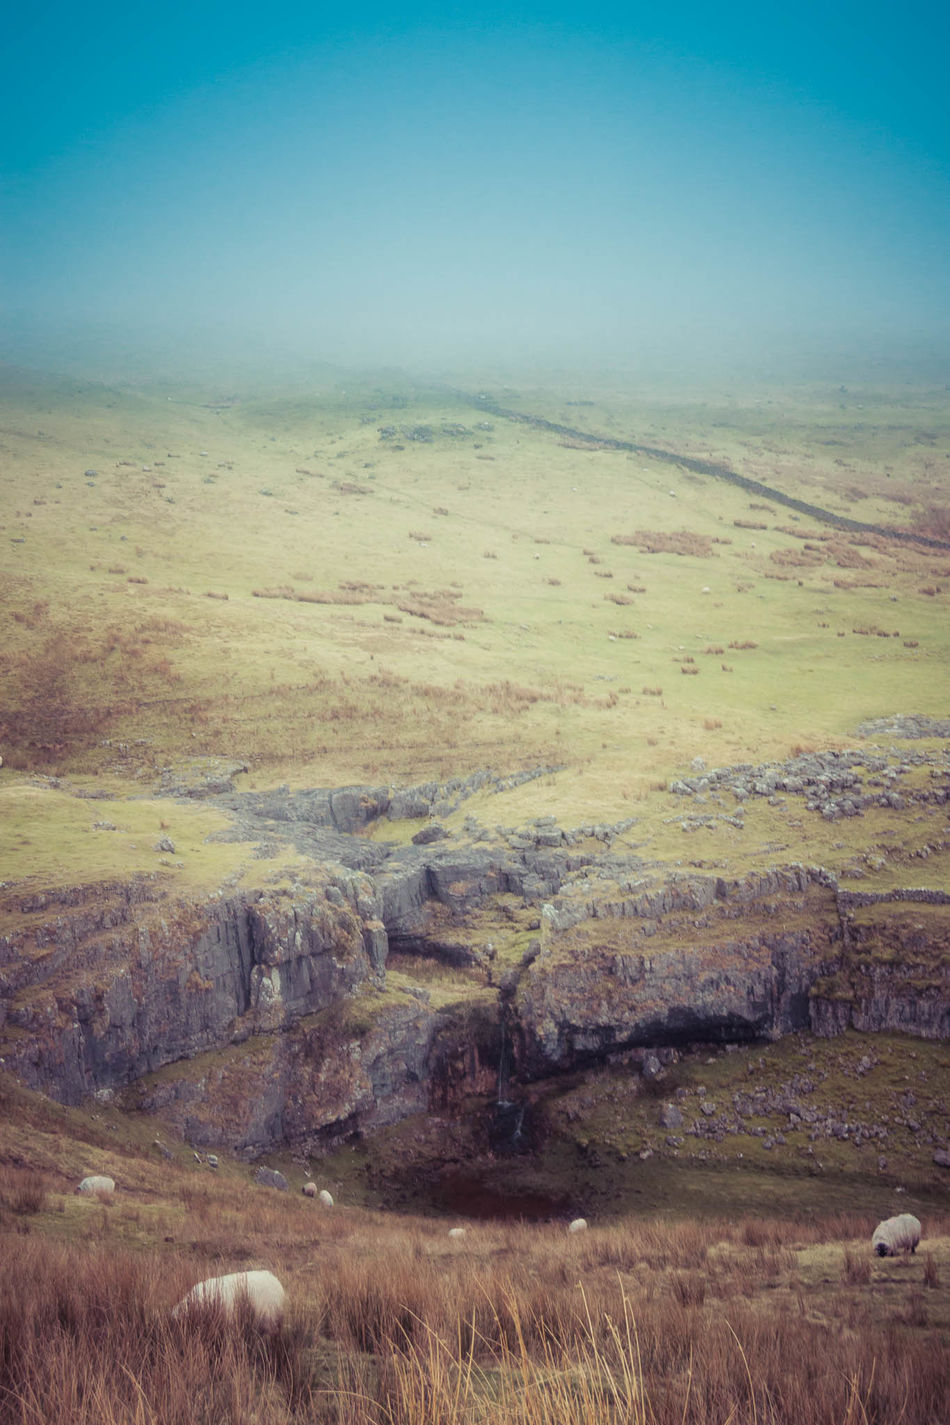 Beauty In Nature Day Landscape Mountain Nature No People Outdoors Patchwork Landscape Pen-y-ghent Scenics Sky Three Peaks Tranquil Scene Tranquility Yorkshire Dales Yorkshire Three Peaks